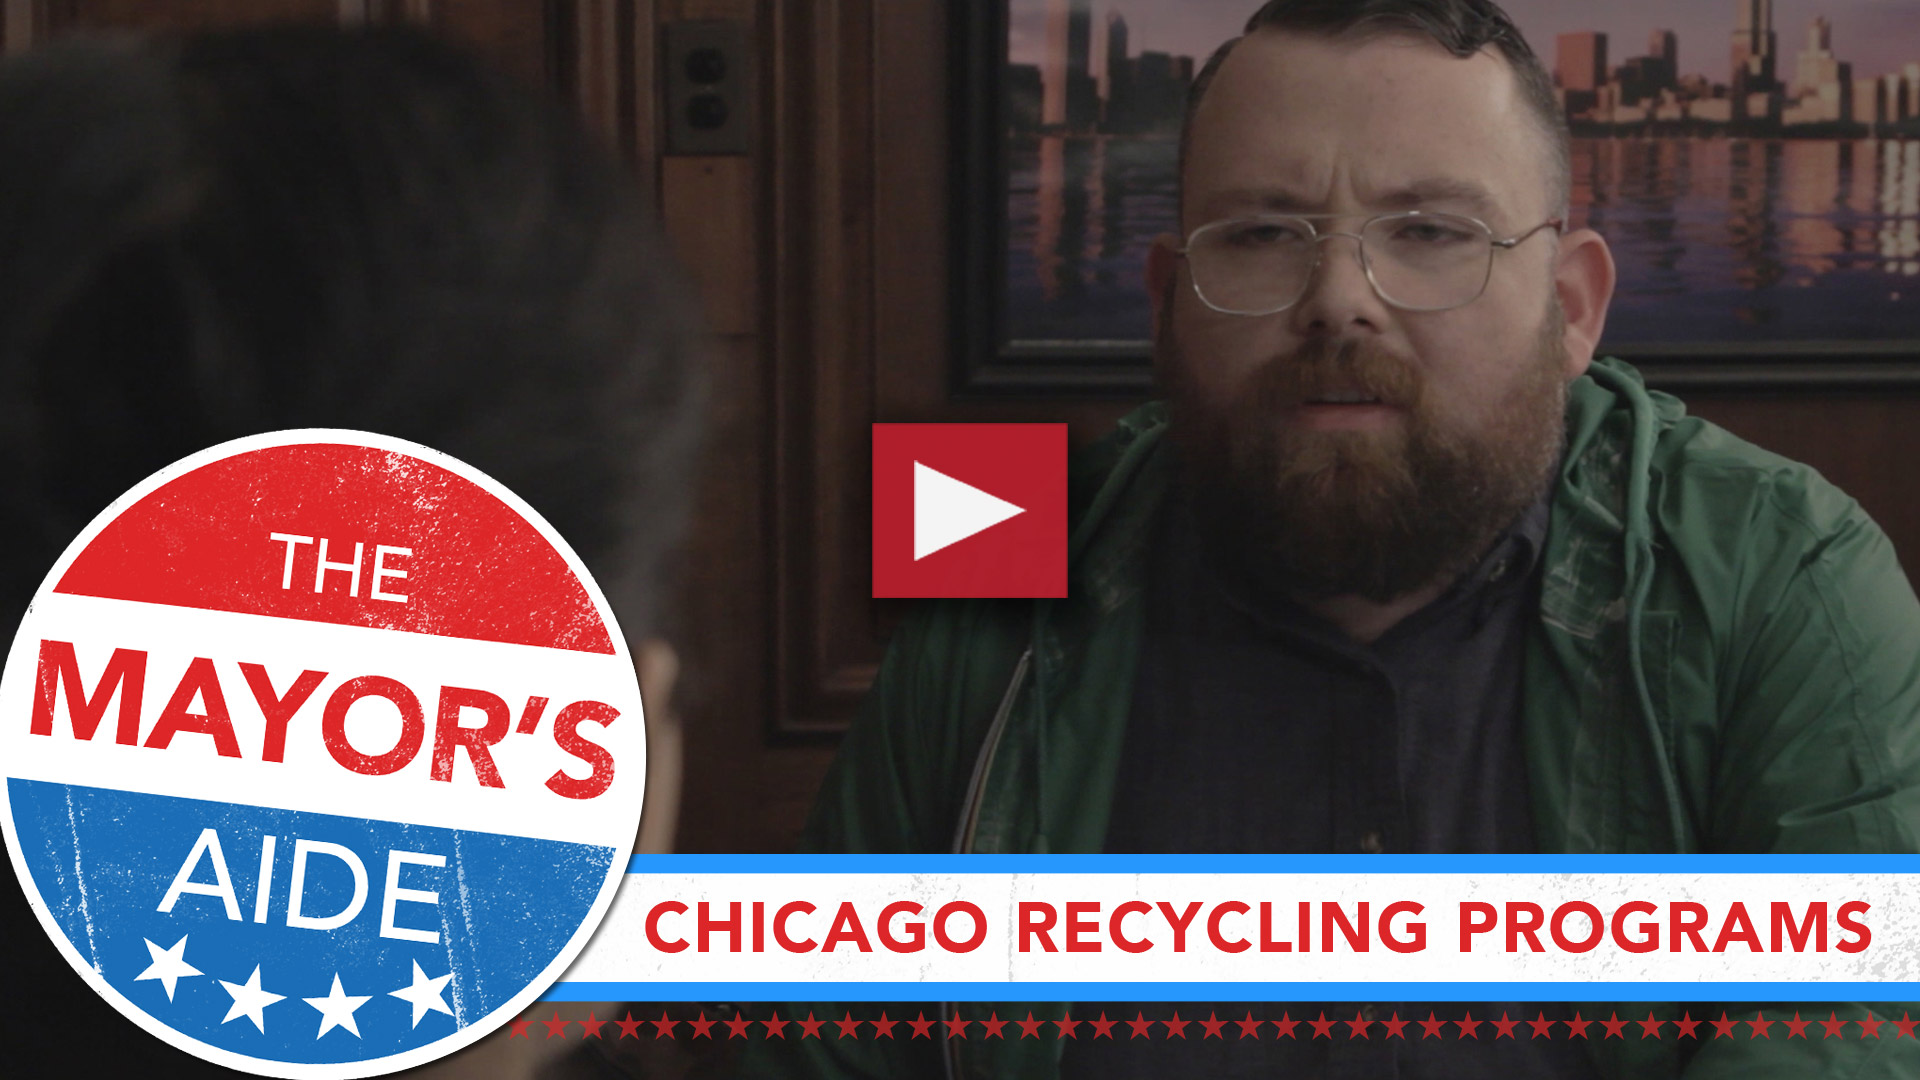 The Mayor's Aide - Chicago Recycling Program